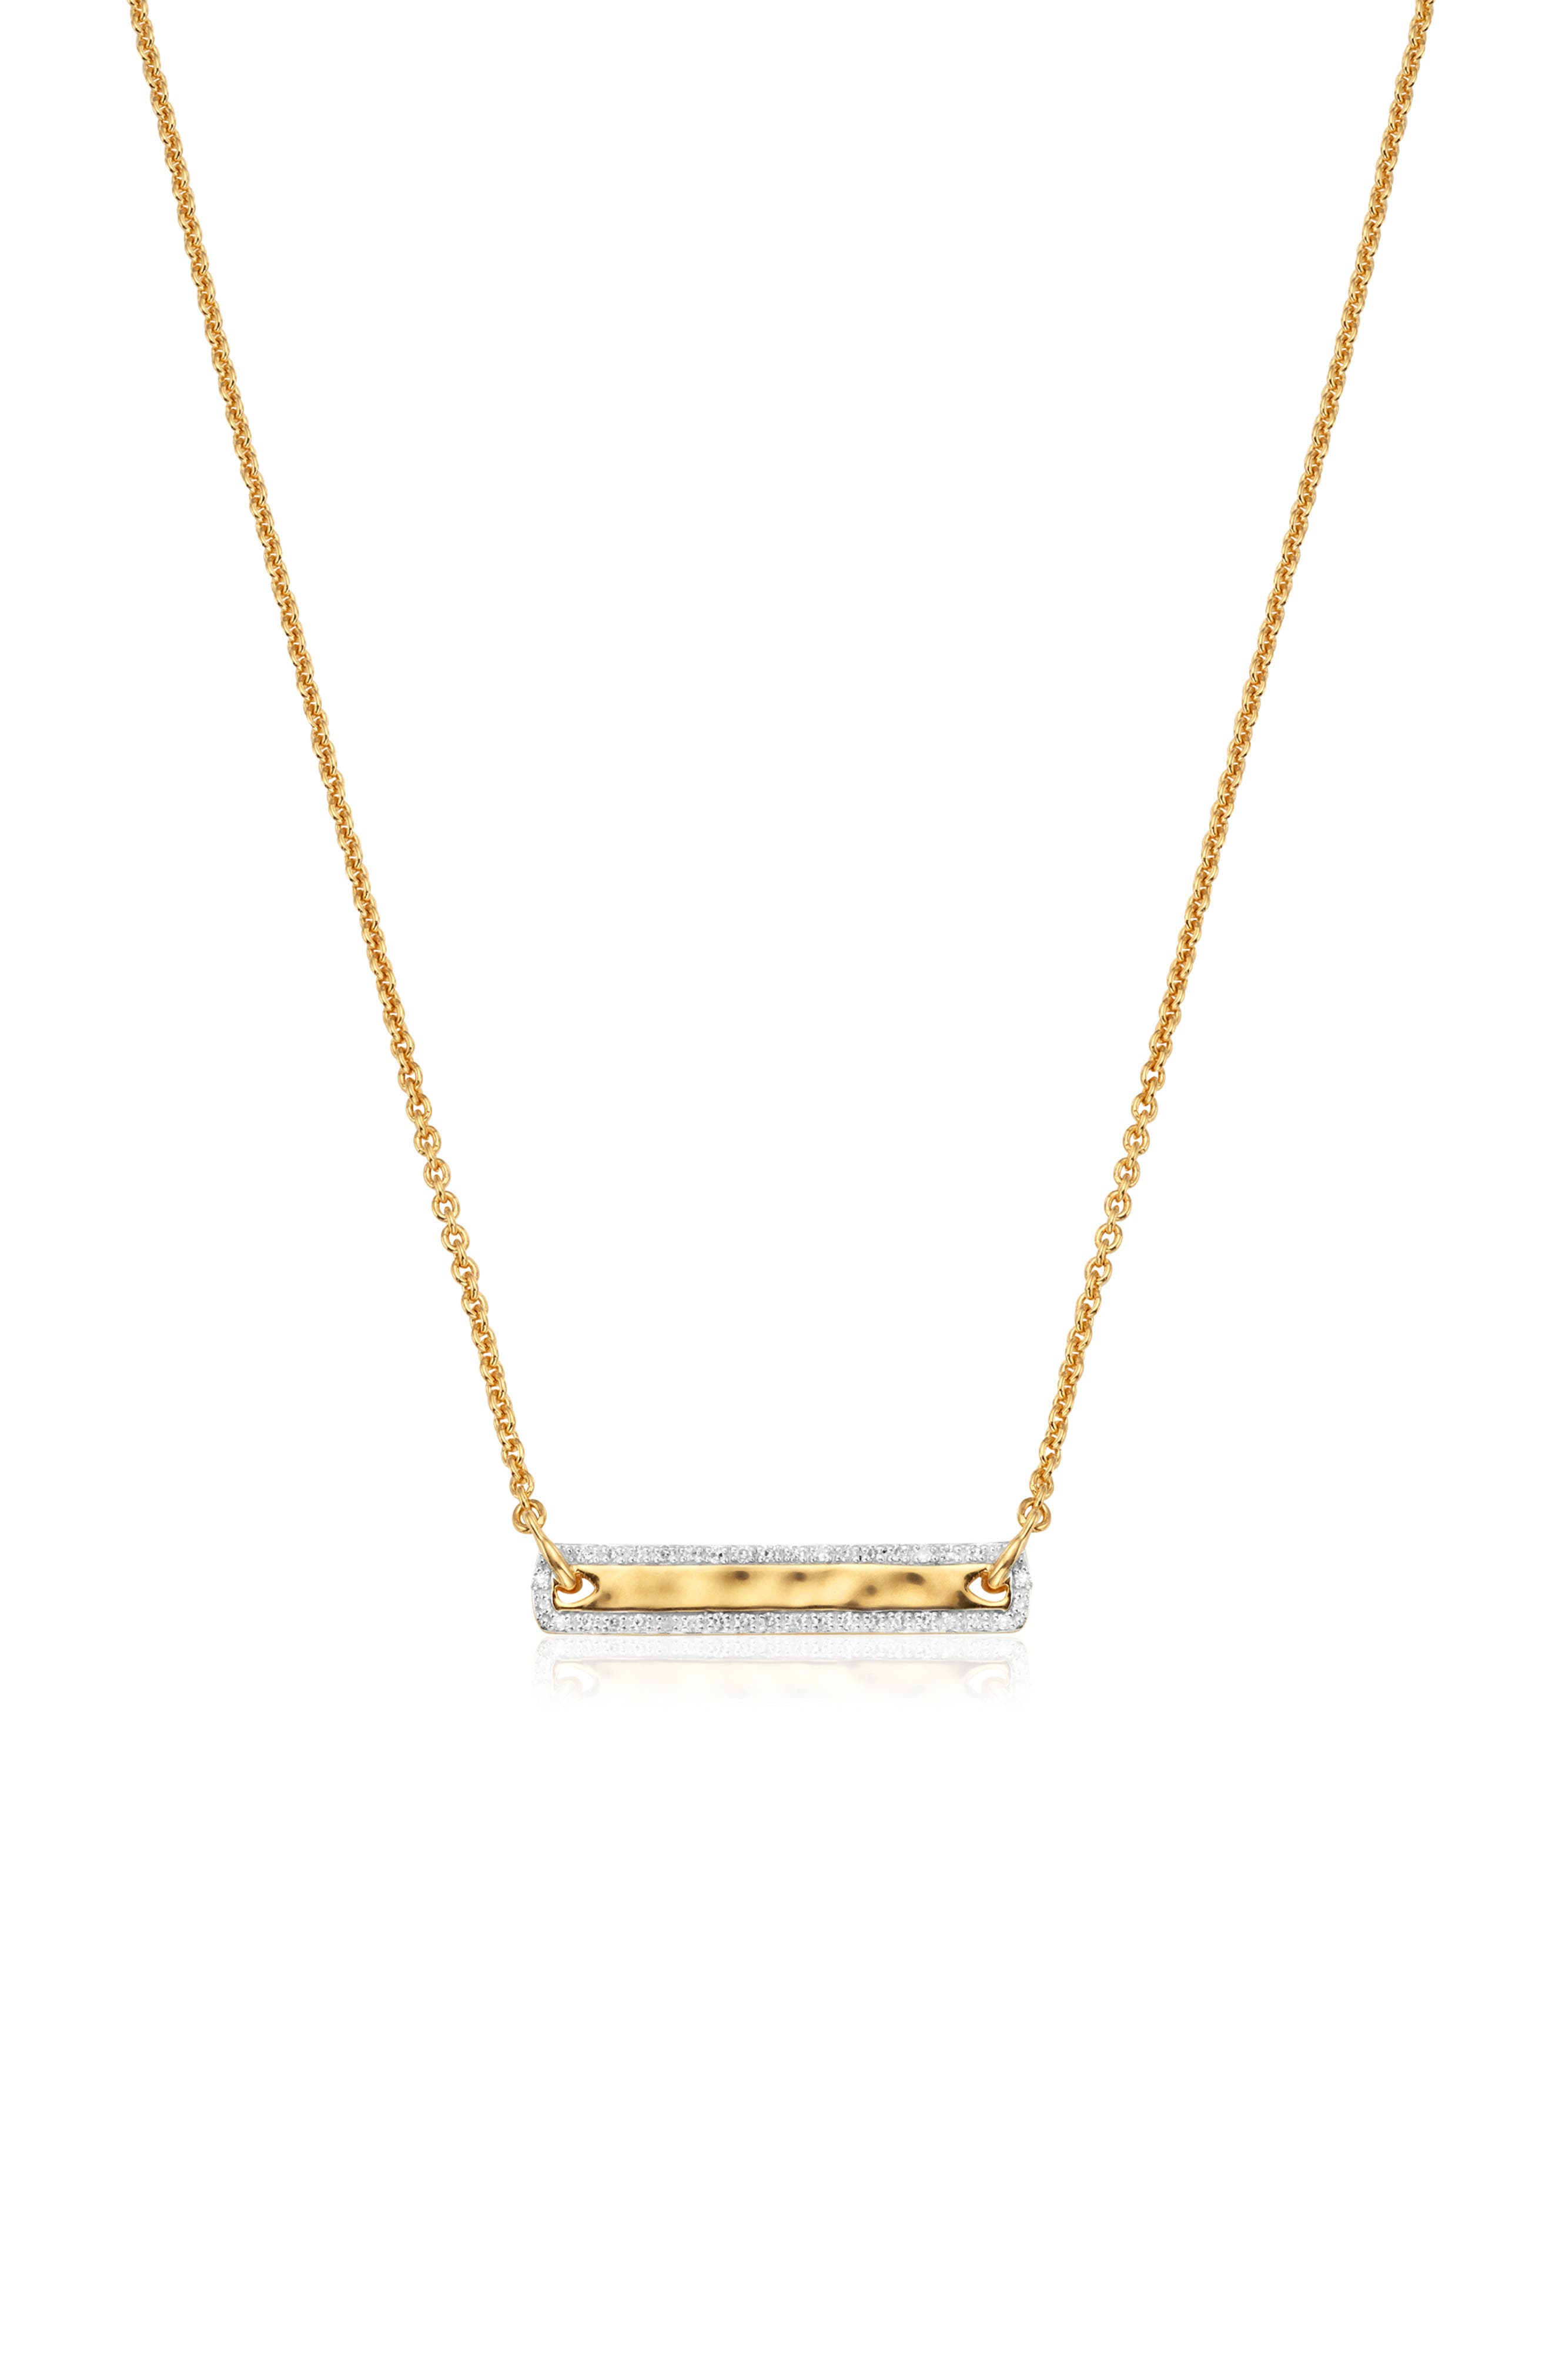 A hammered bar is surrounded by pave diamonds in a necklace you can wear every day (and night) of the year. Style Name: Monica Vinader Havana Tiny Bar Necklace. Style Number: 6047146. Available in stores.